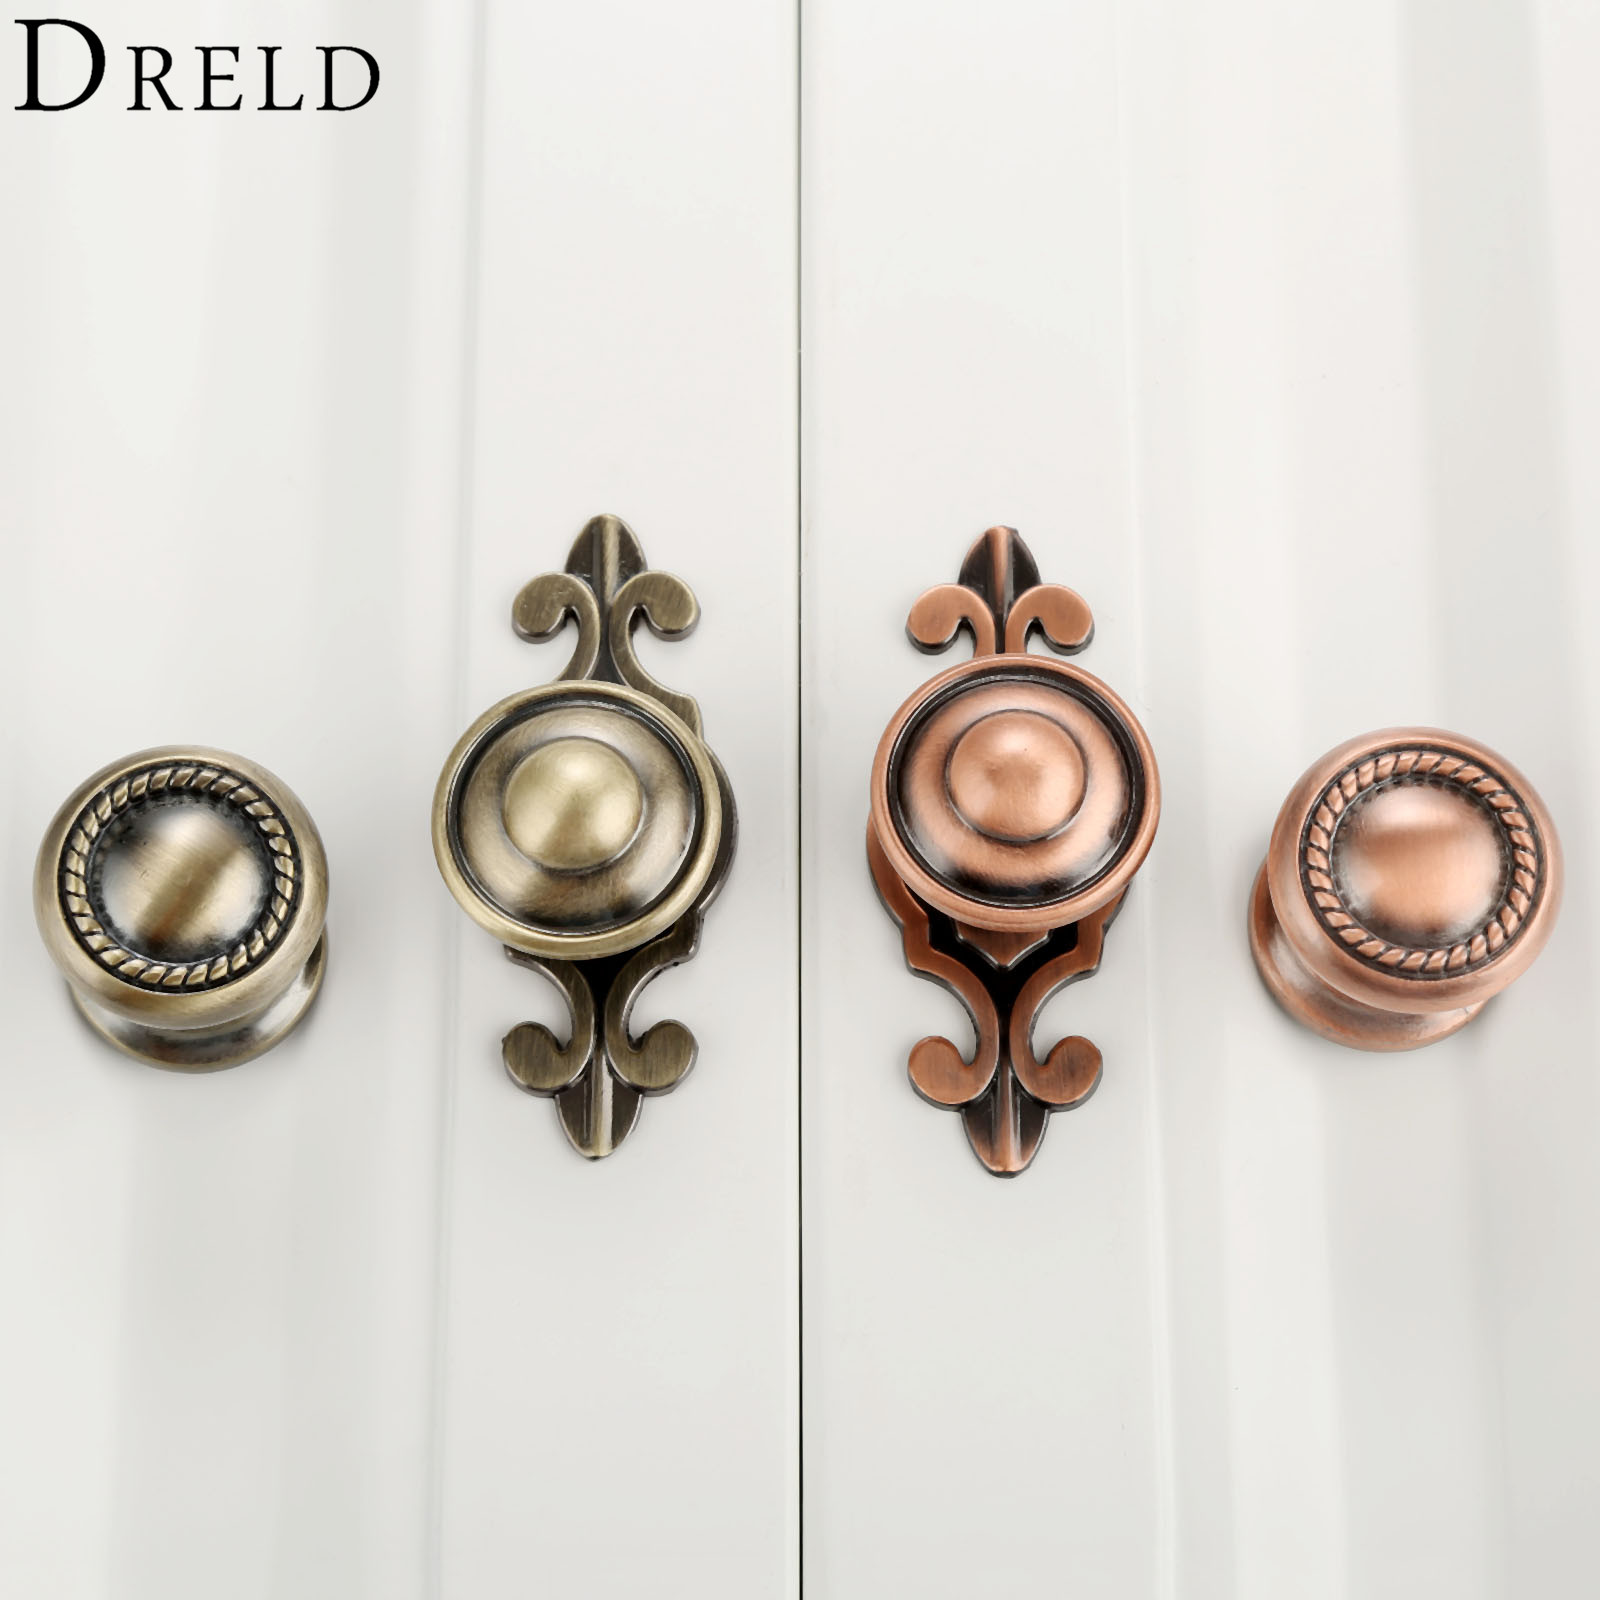 DRELD Furniture Handles Vintage Cabinet Knobs and Handles Alloy Door Knob Cupboard Drawer Kitchen Pull Handle Furniture Hardware